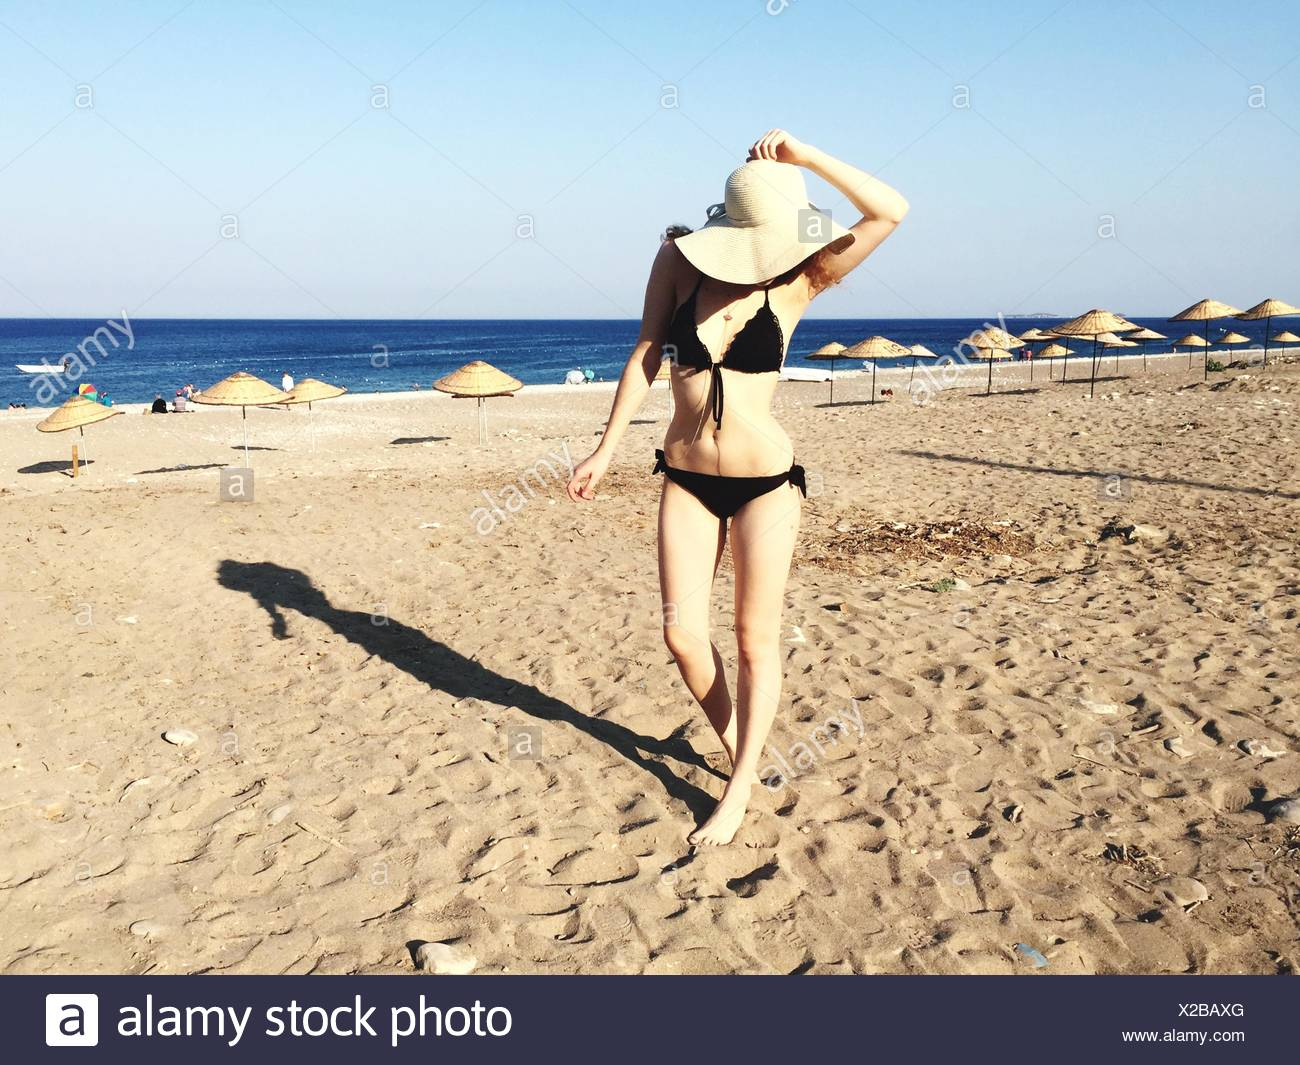 Full Length Of Beautiful Woman In Bikini On Beach During Sunny Day - Stock Image